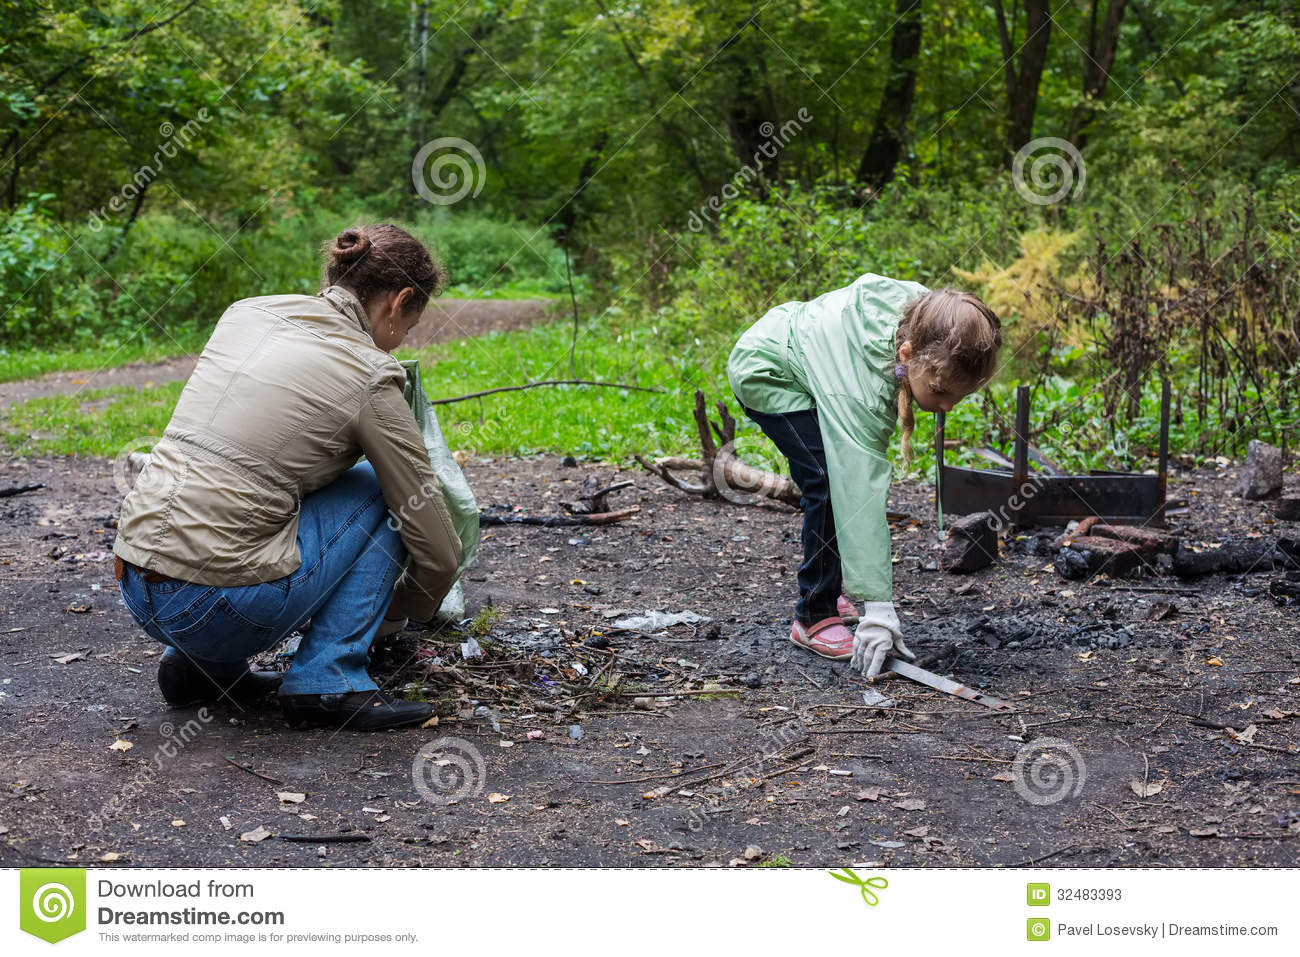 Mother and daughter helping clean up the forest